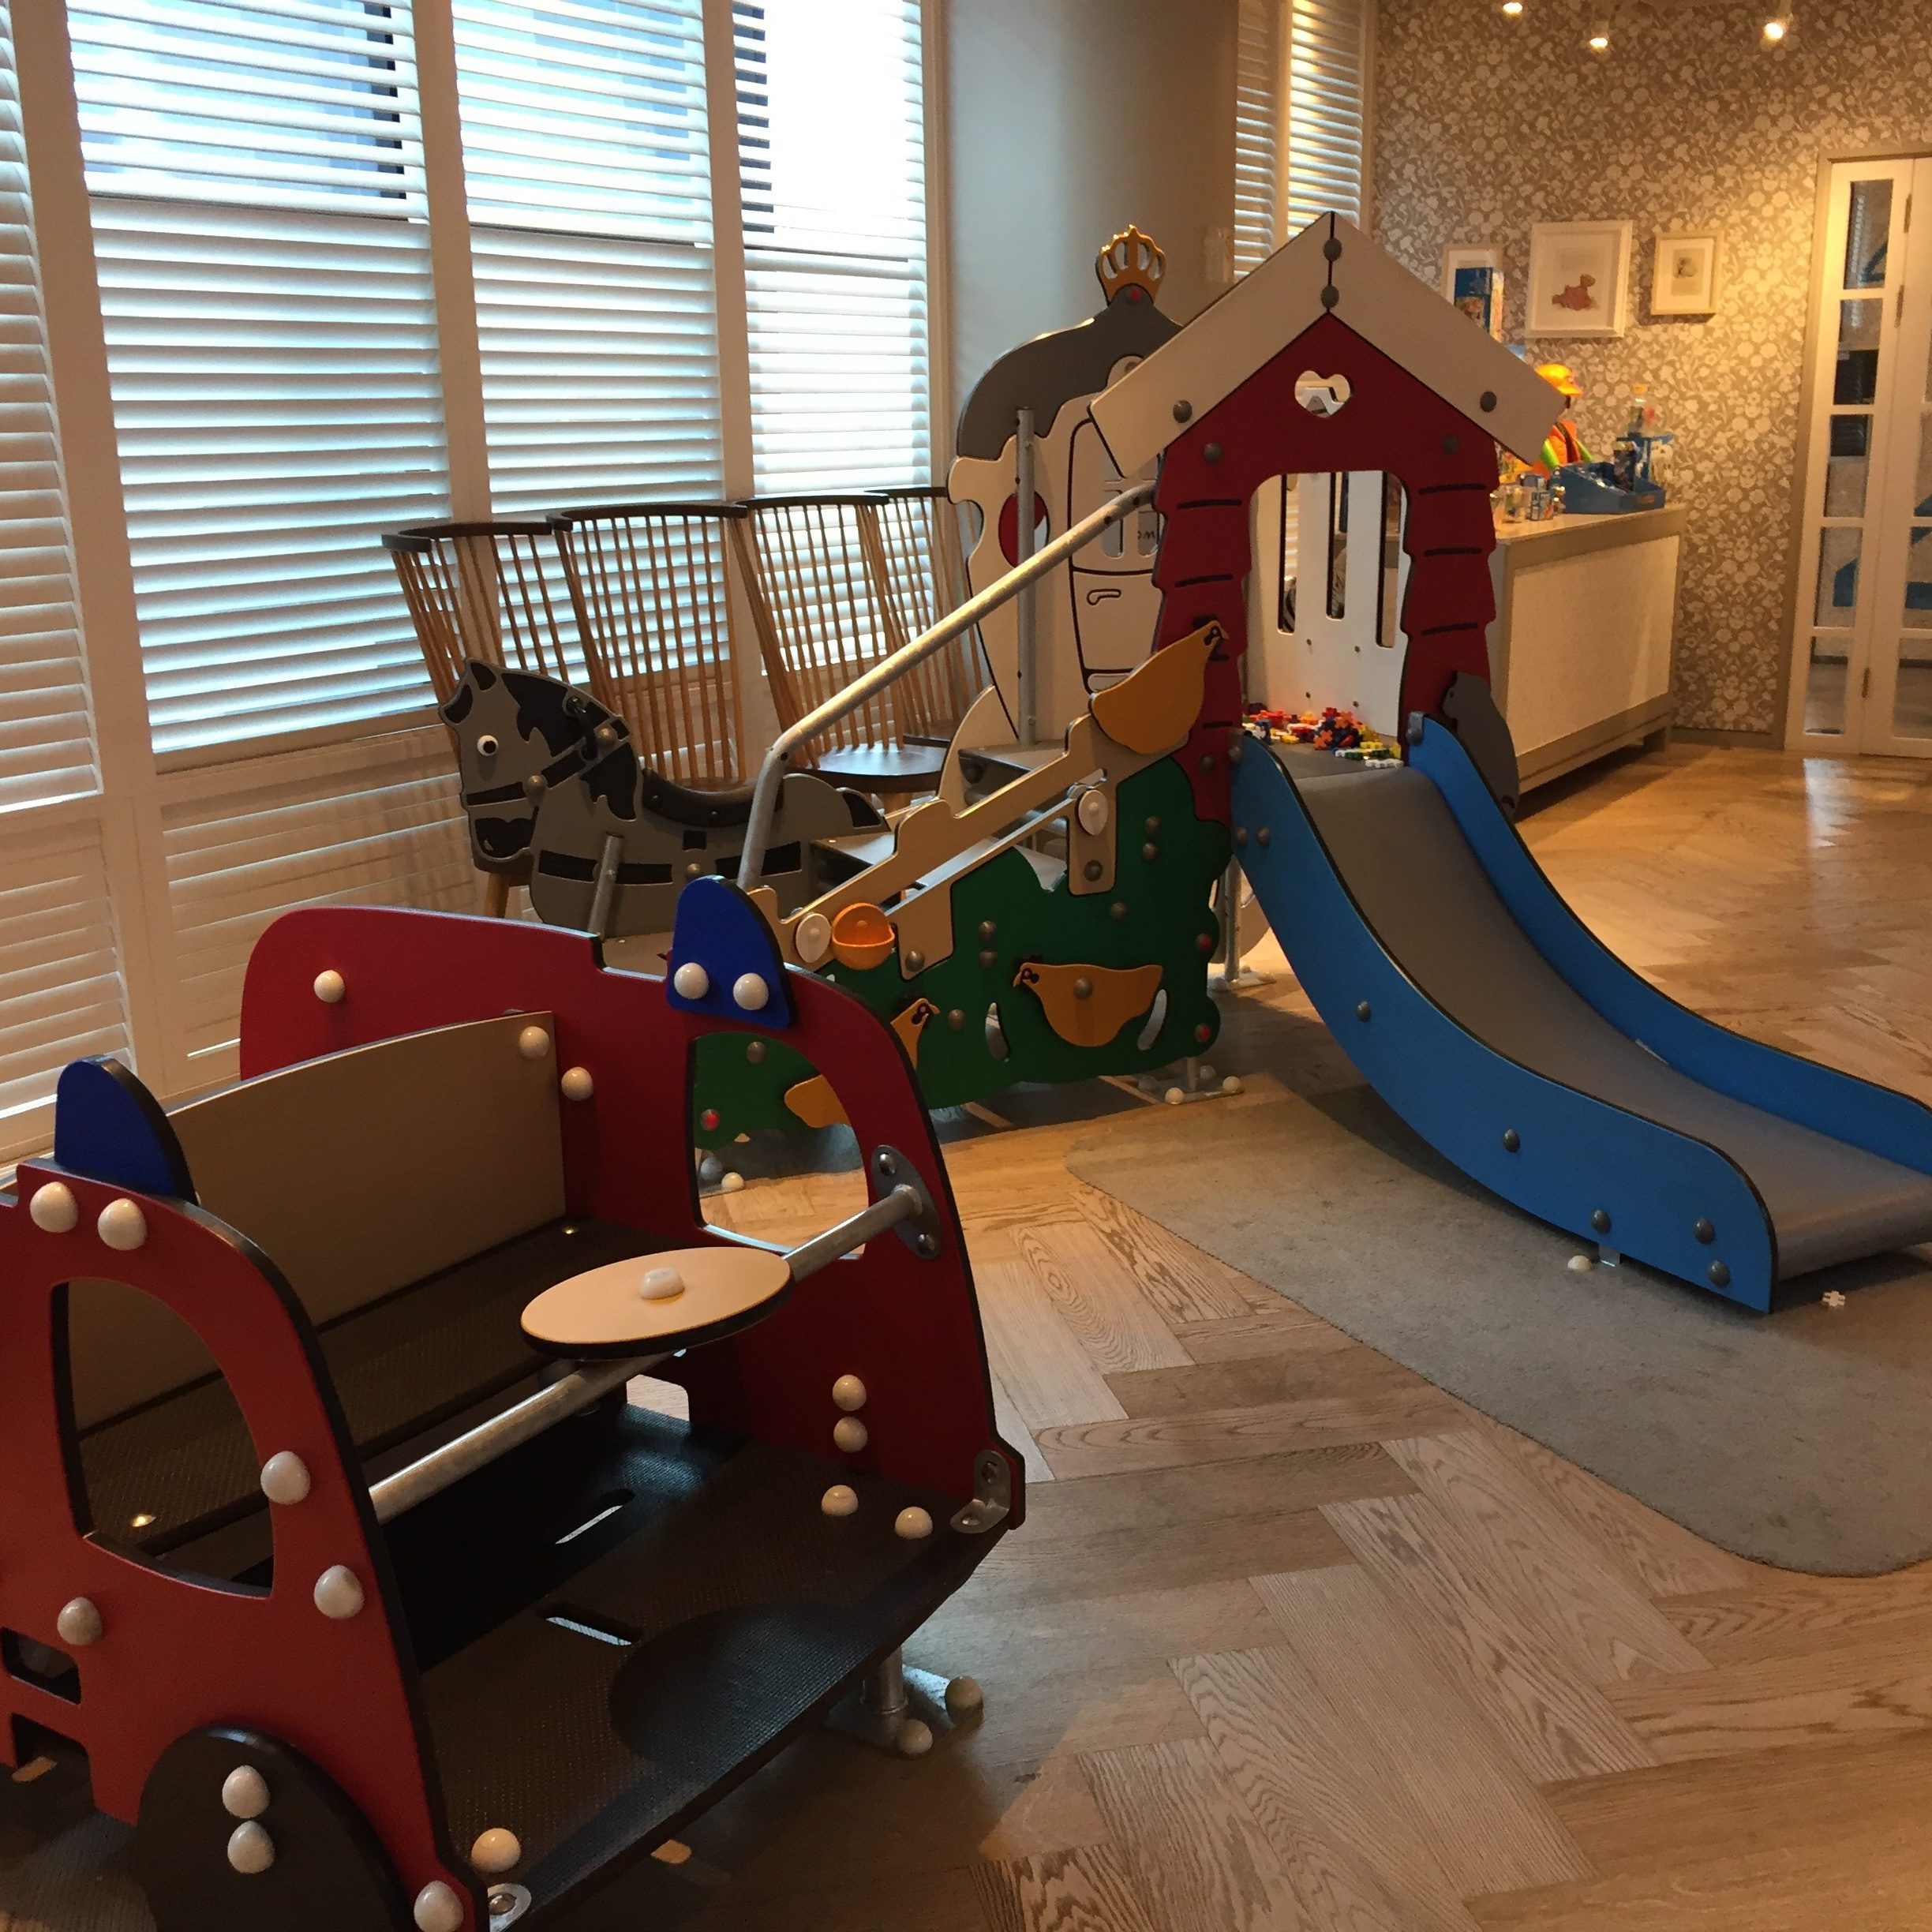 Indoor playground kids cafe Seoul